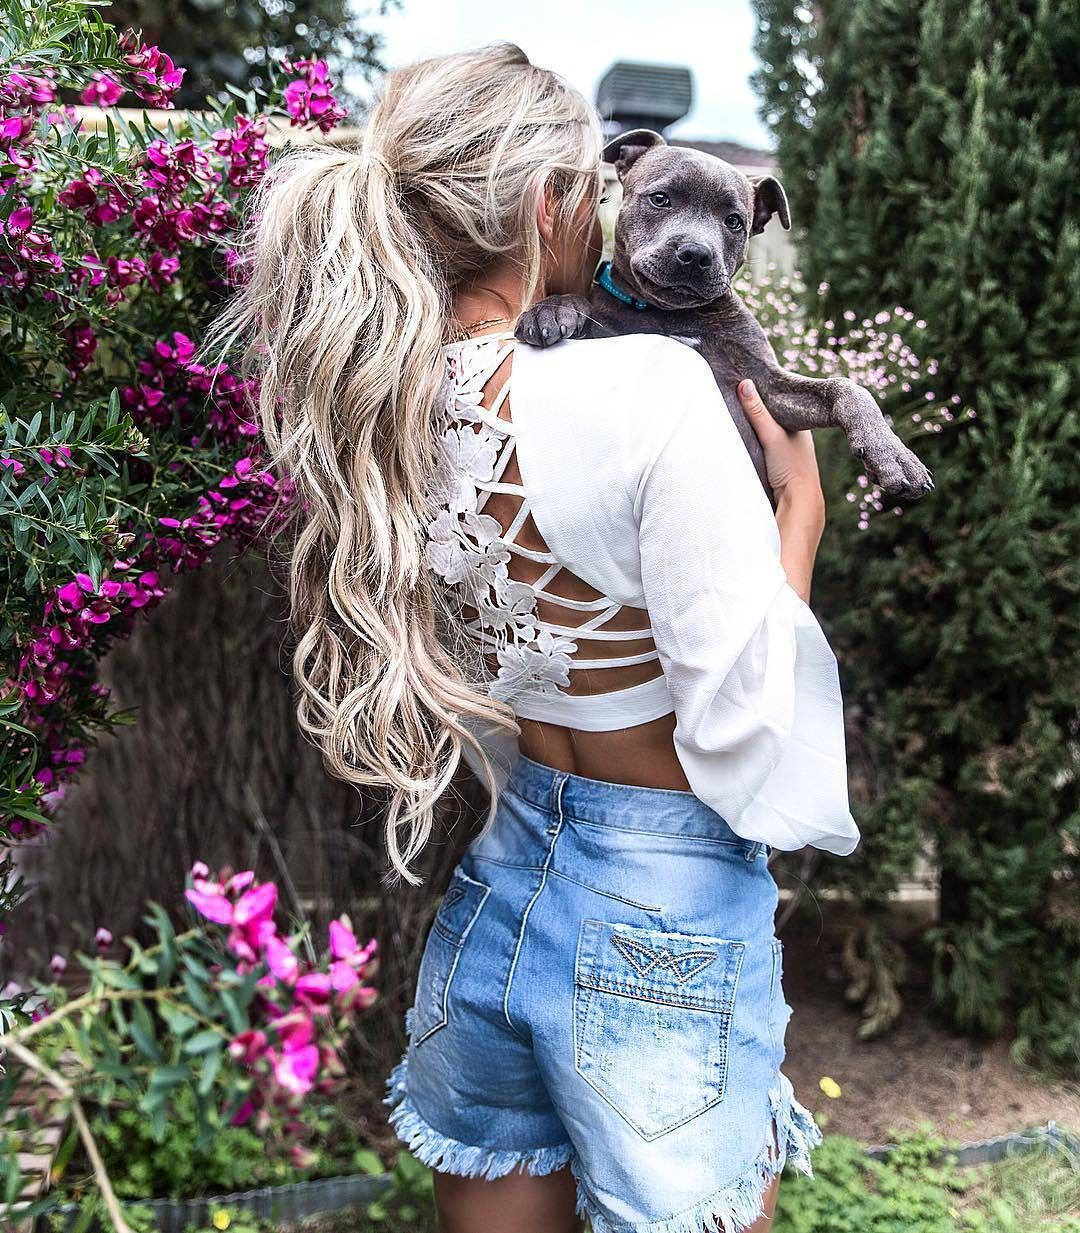 995720cfaa88  hildeee s giving us festival outfit ideas in our Feeling The Vibes Crop Top  and Fireproof